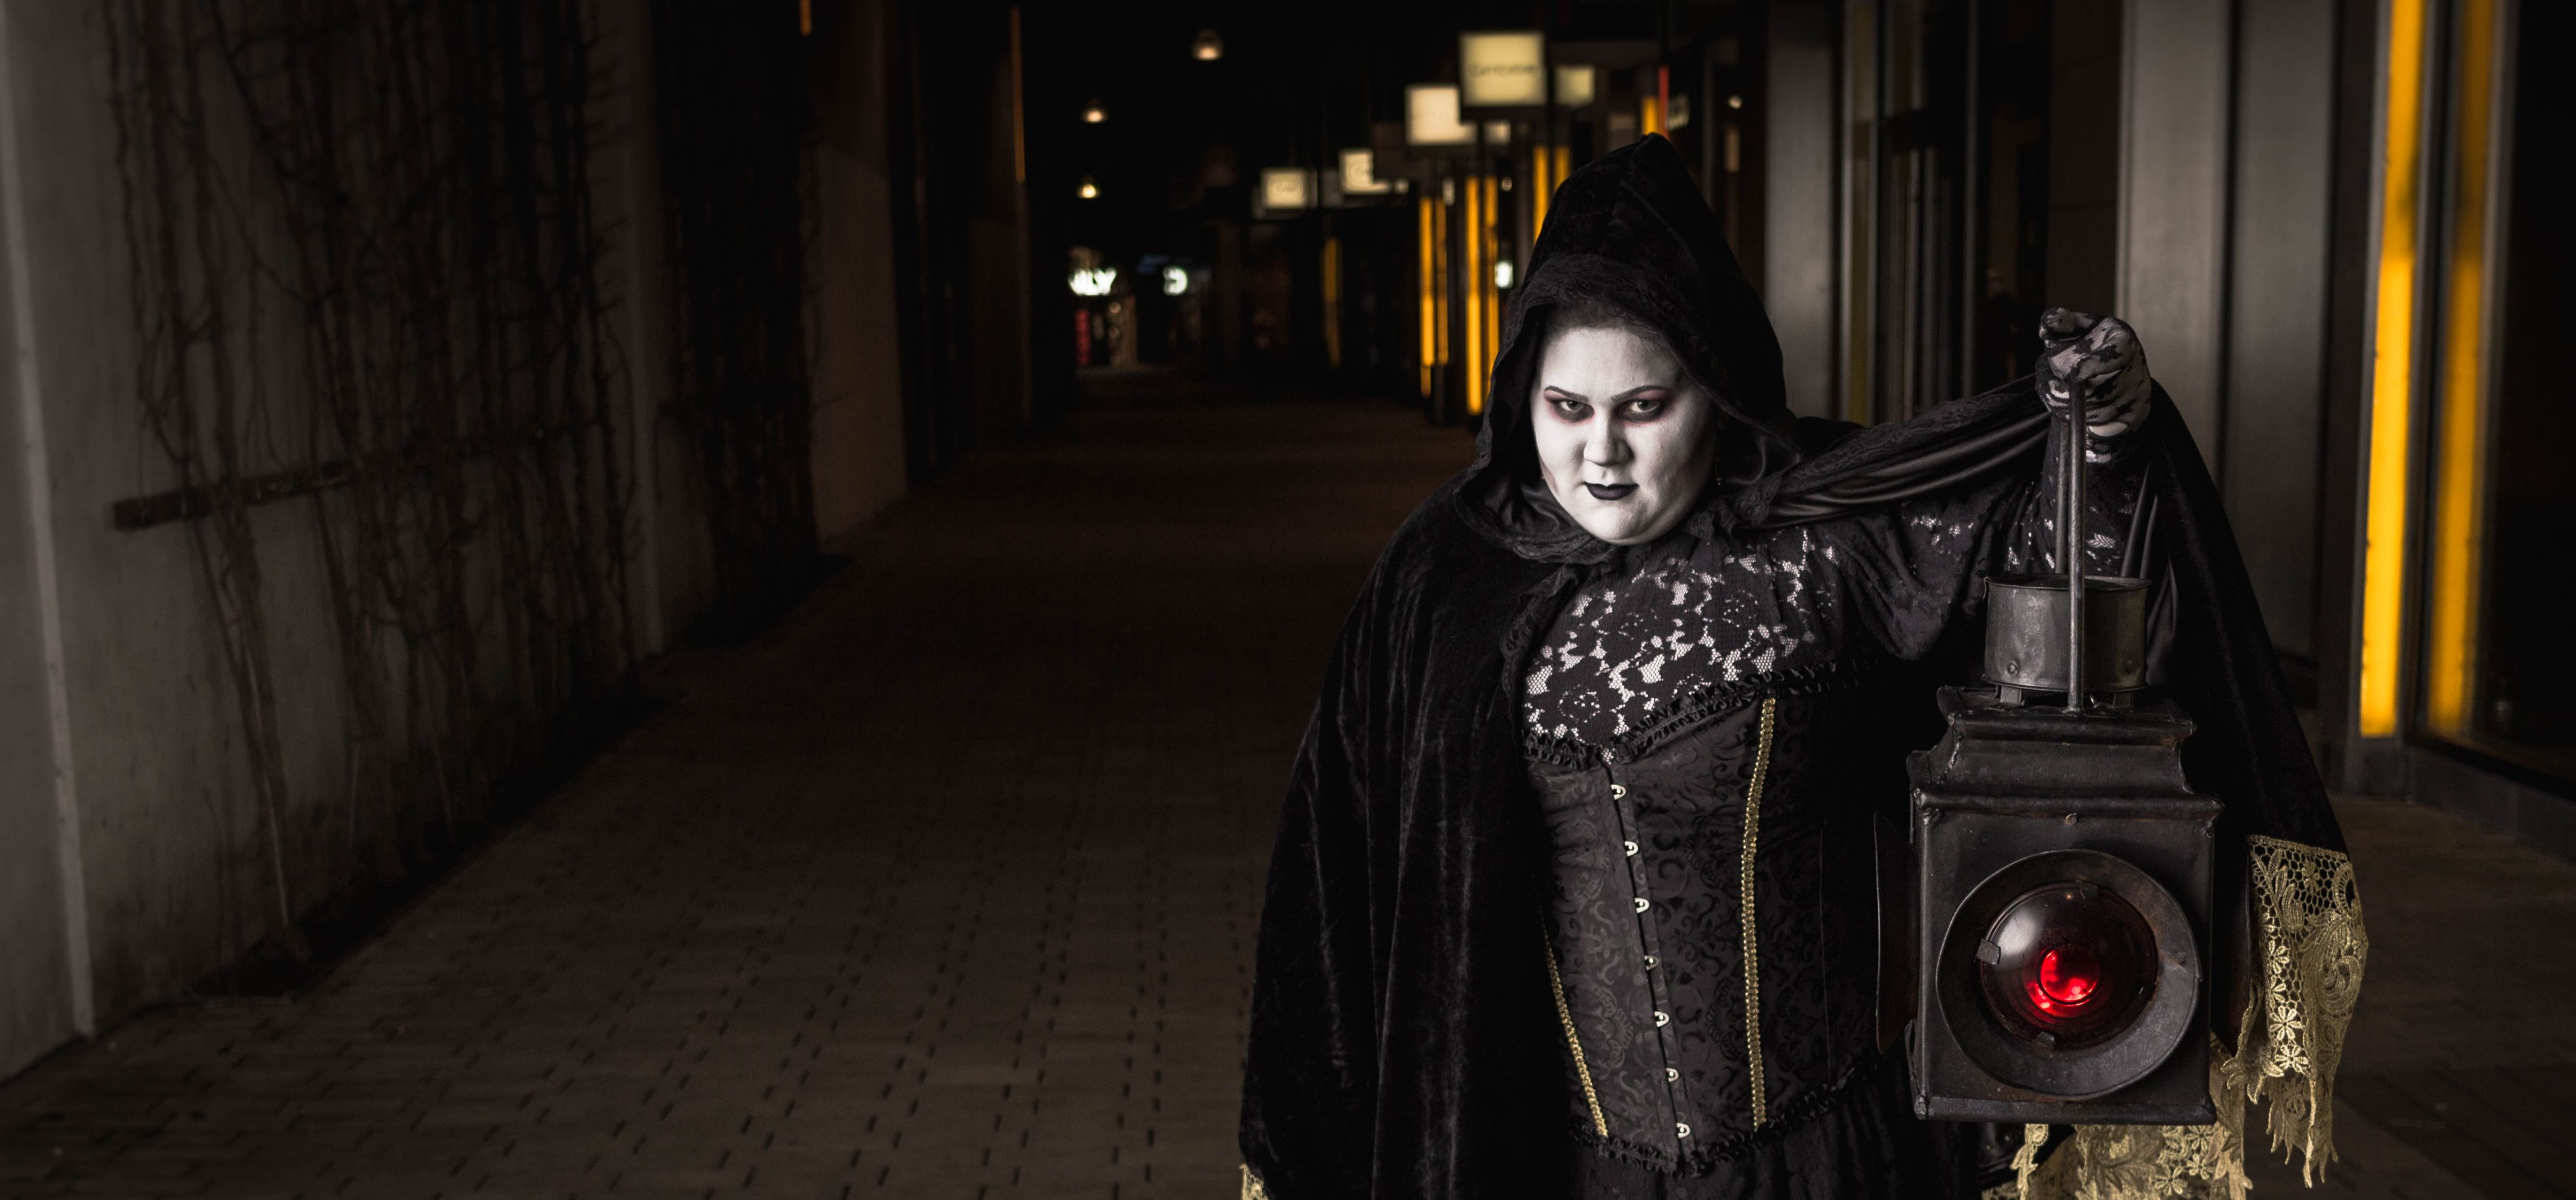 Ghost Tours Tilburg Uitsnede